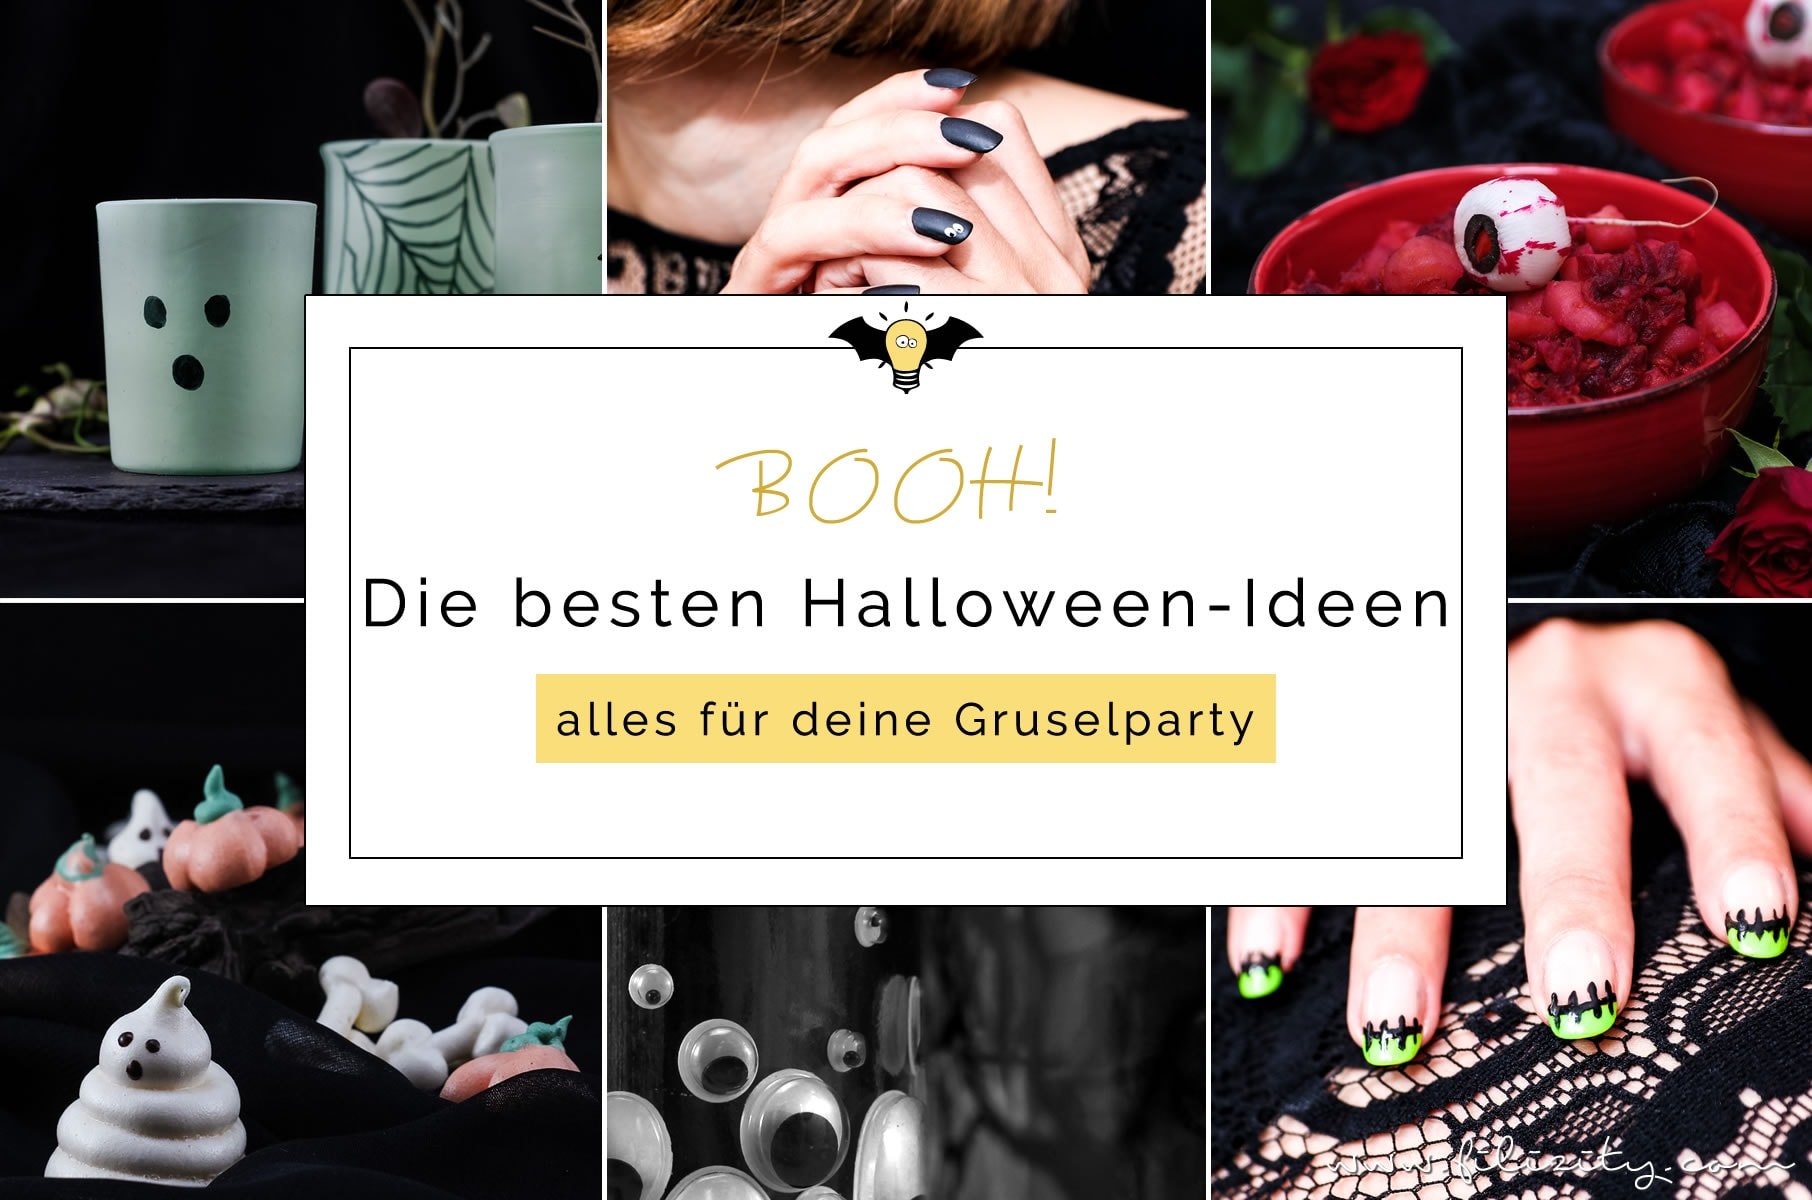 die besten halloween ideen lifestyle blog aus dem rheinland. Black Bedroom Furniture Sets. Home Design Ideas